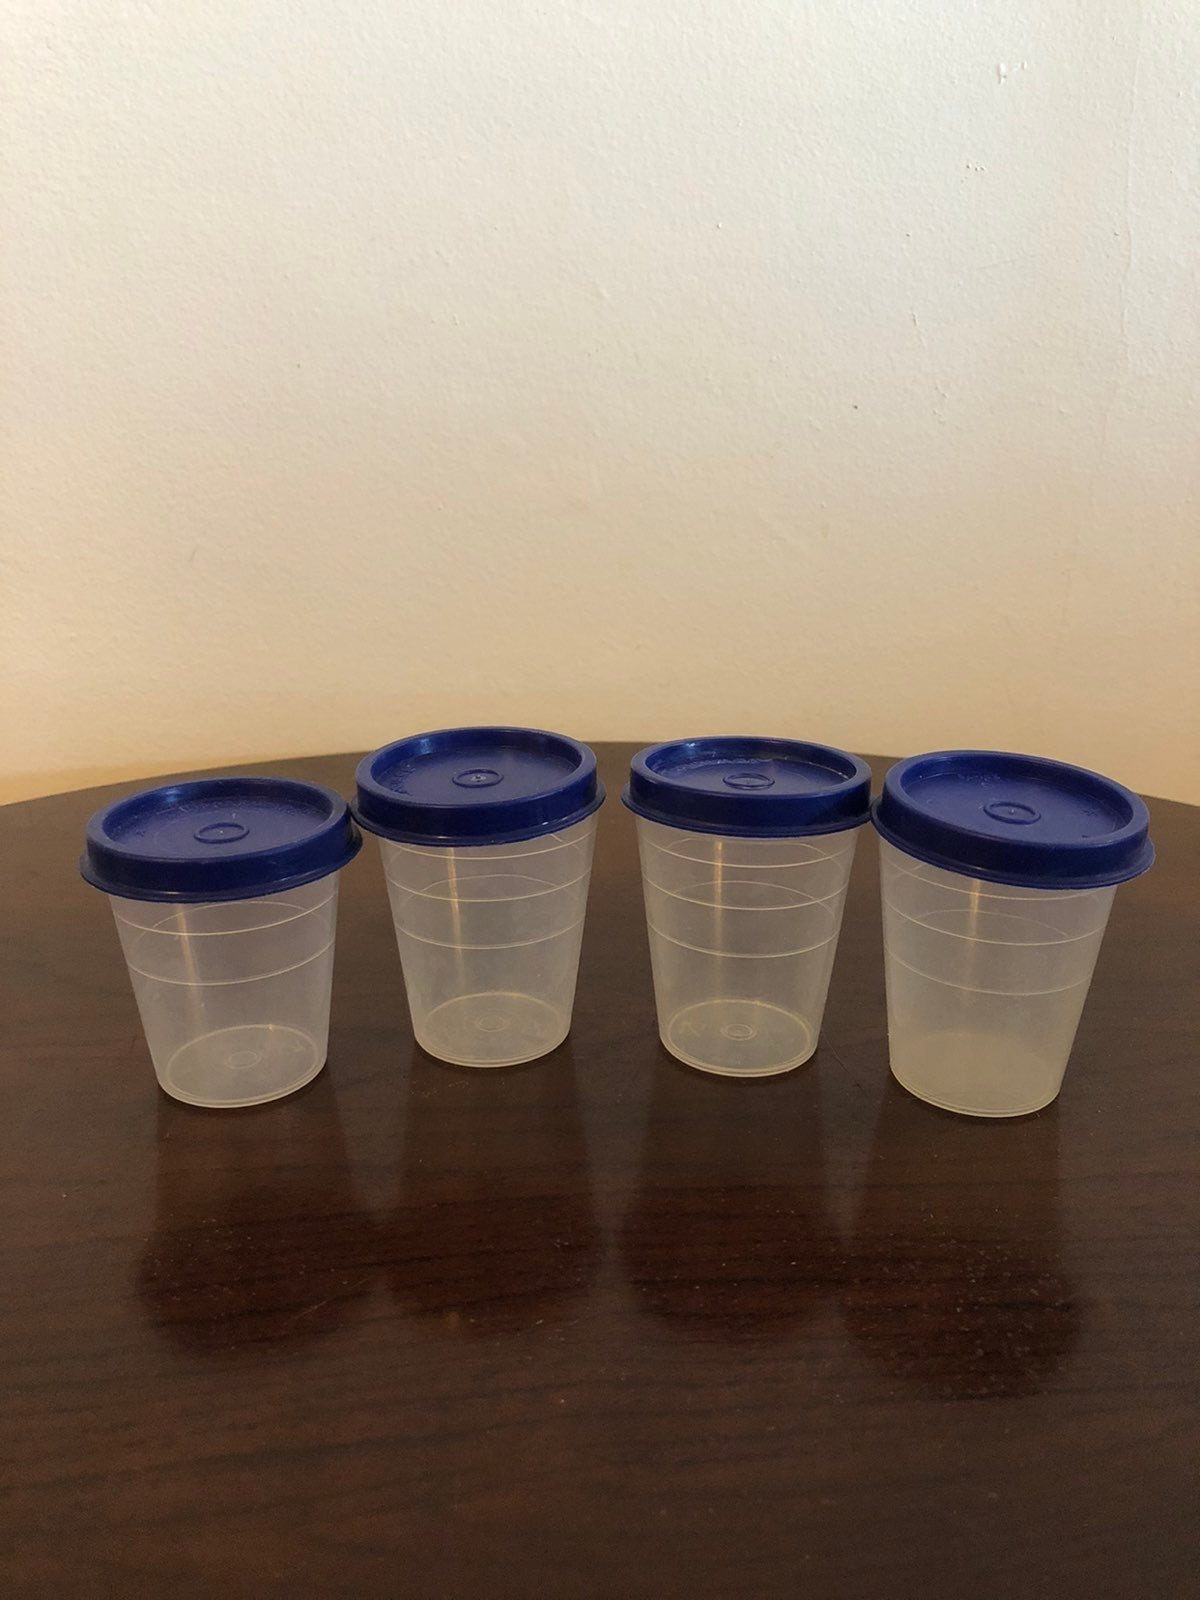 Vintage Tupperware mini containers